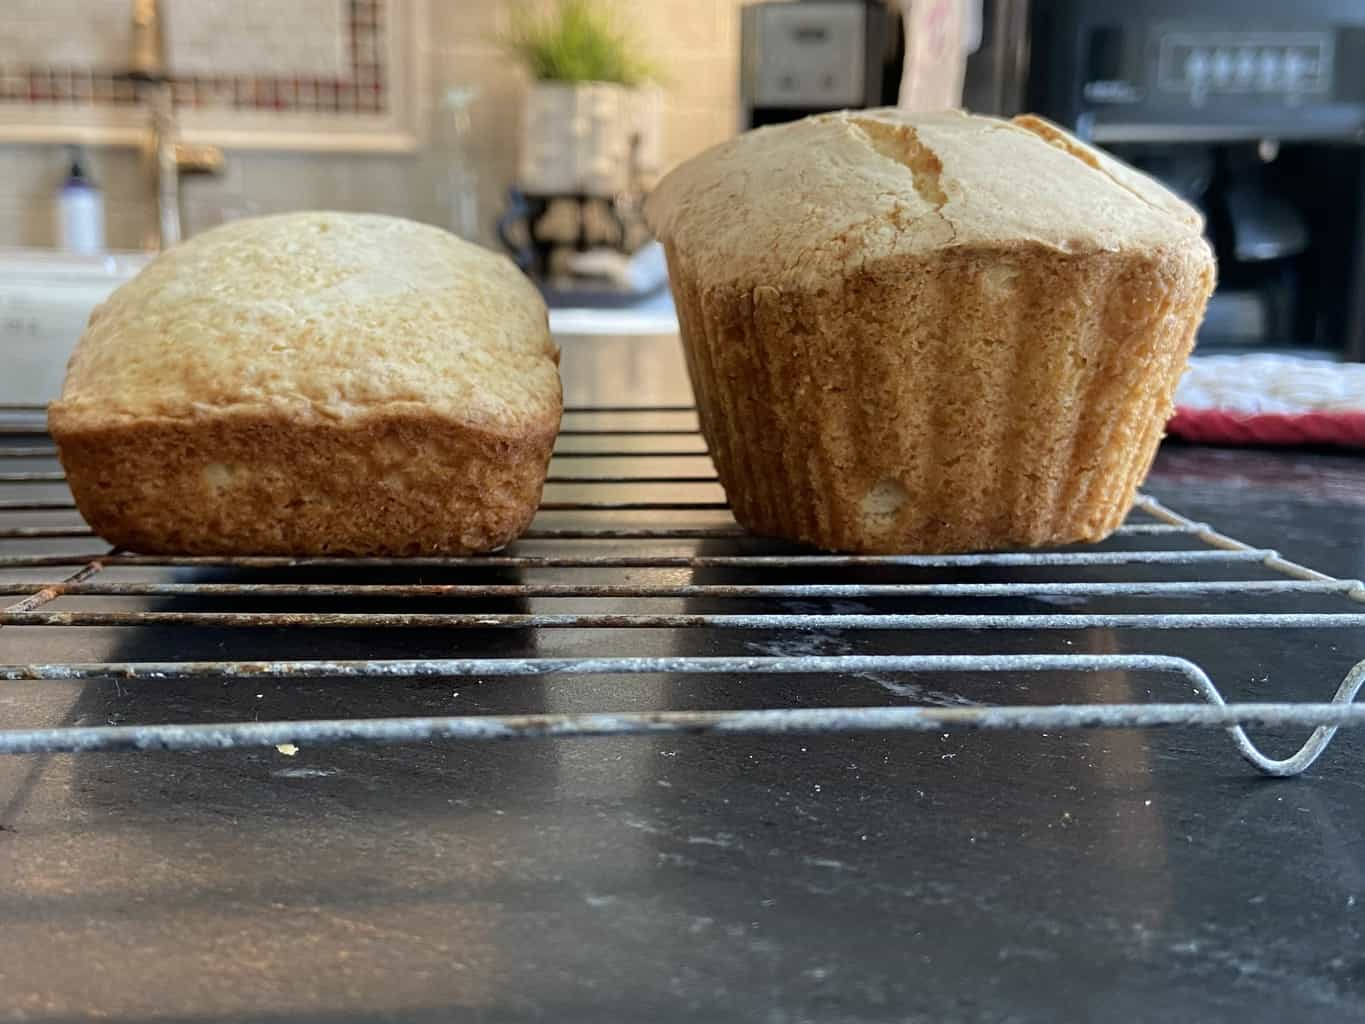 Two cake loaves side by side